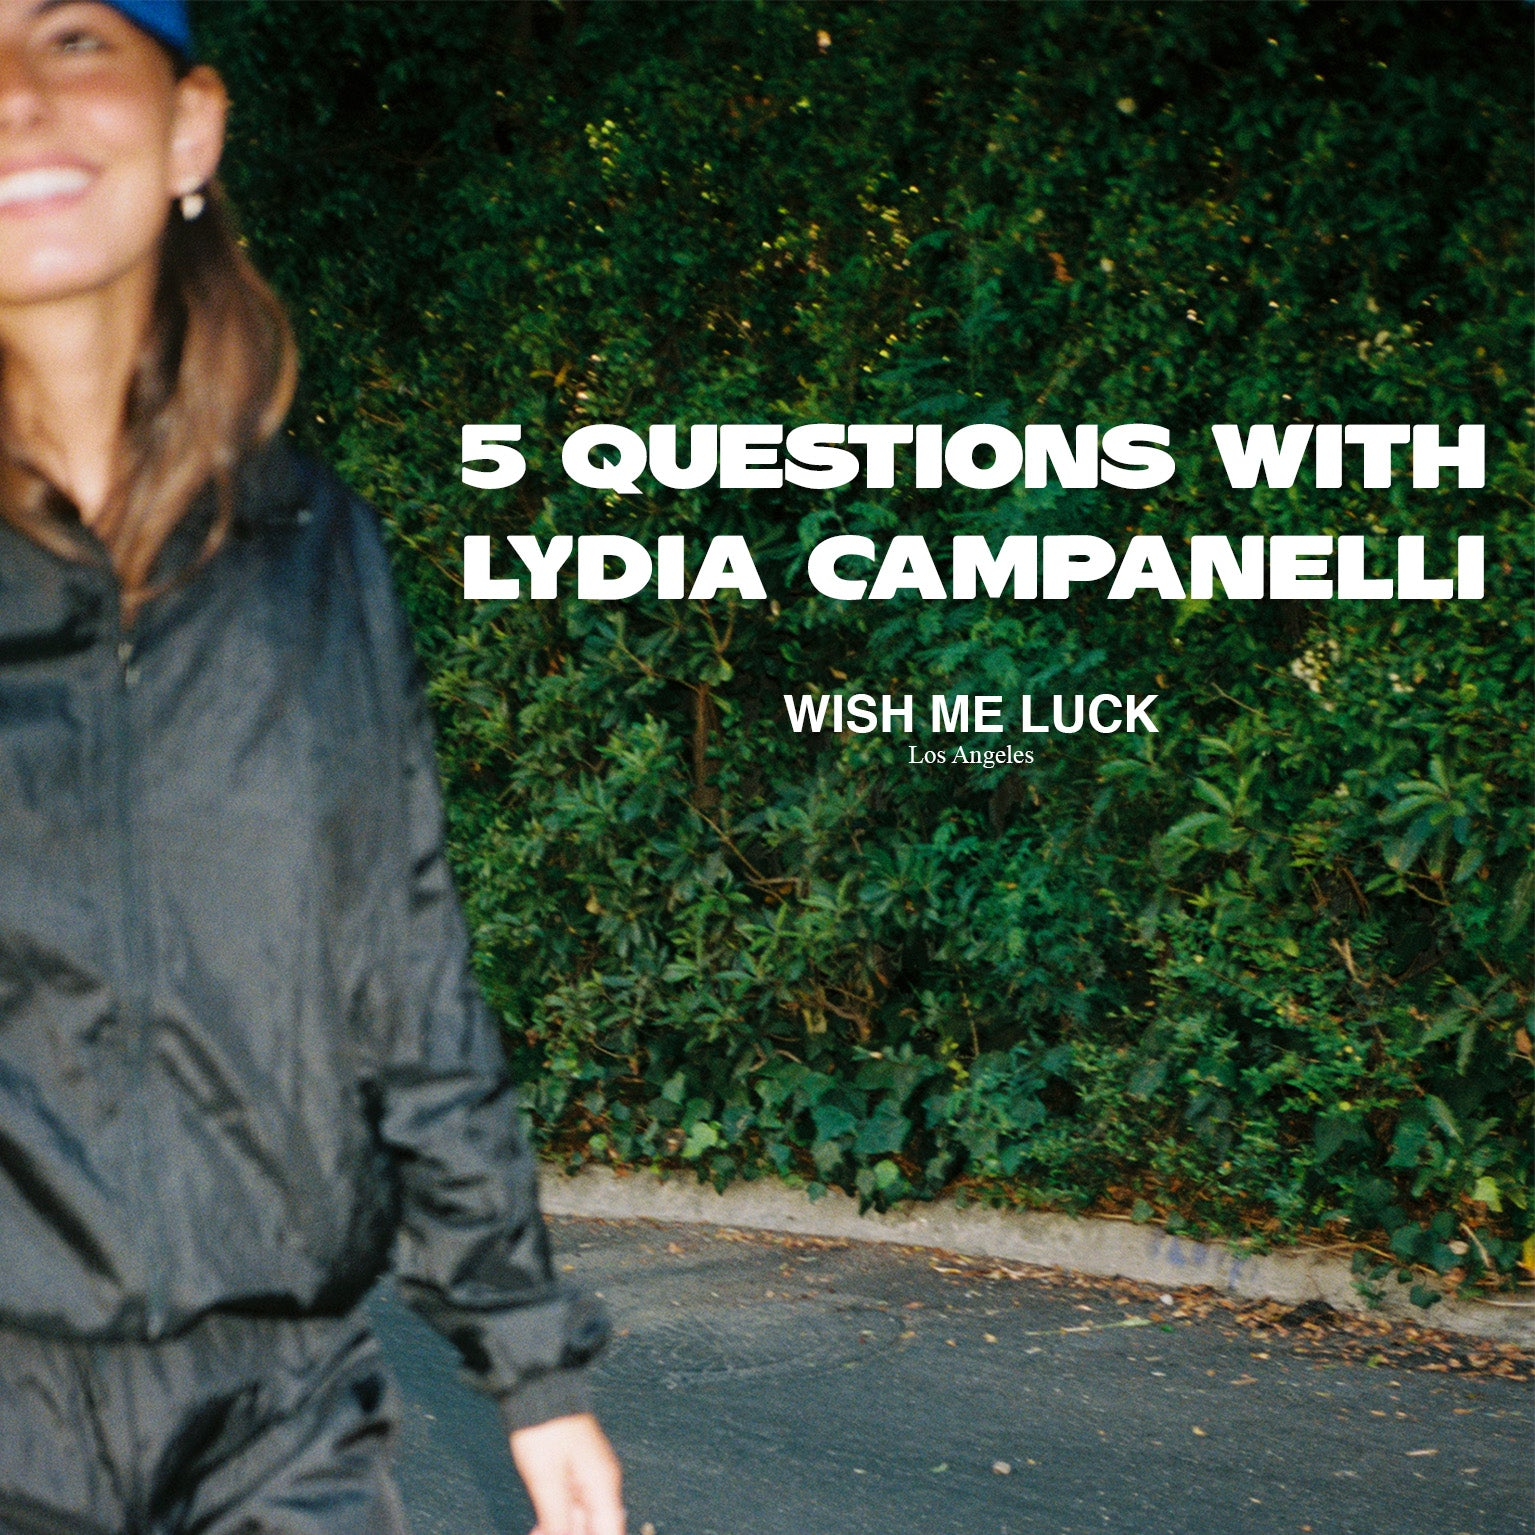 5 QUESTIONS WITH: LYDIA CAMPANELLI